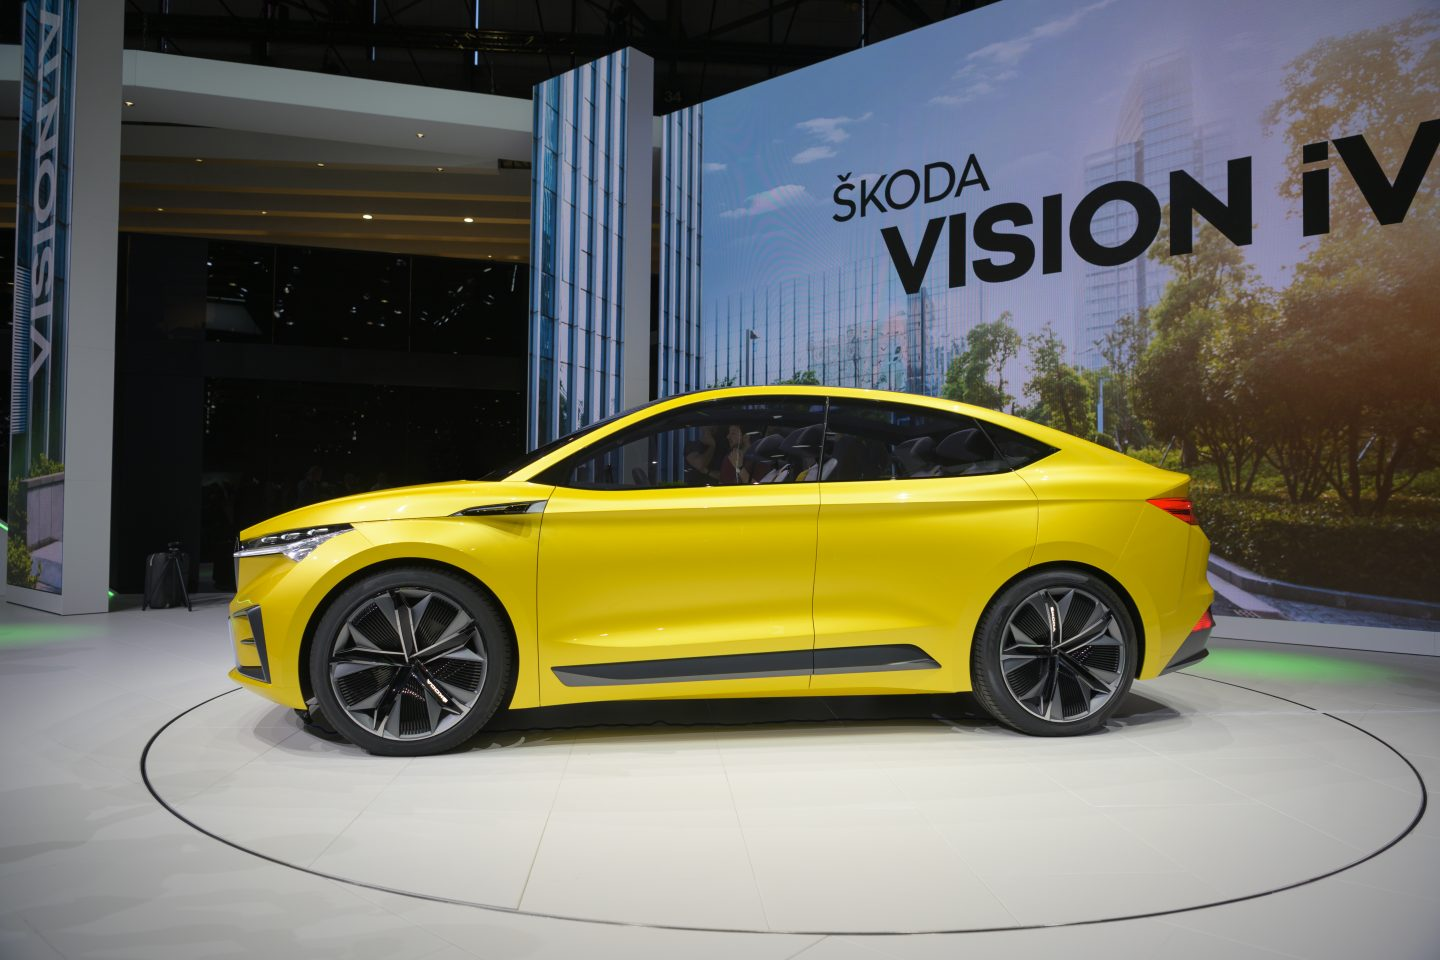 skoda-vision-iv-geneva-side-view